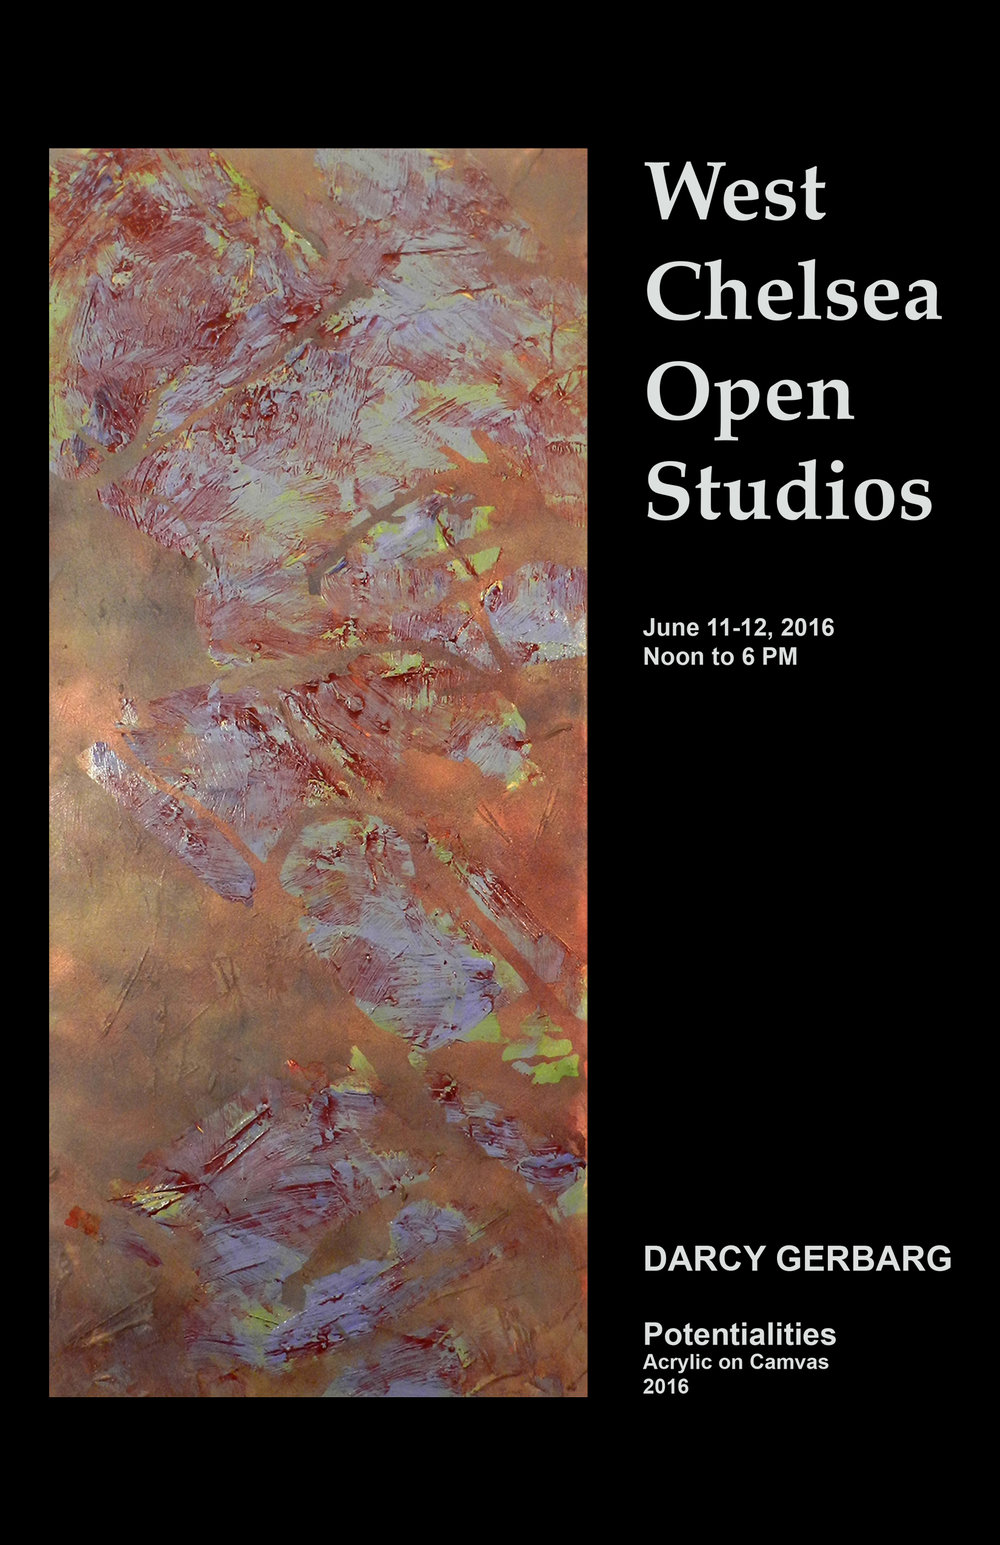 West Cheslea Open Studios Postcard June 2016.jpg